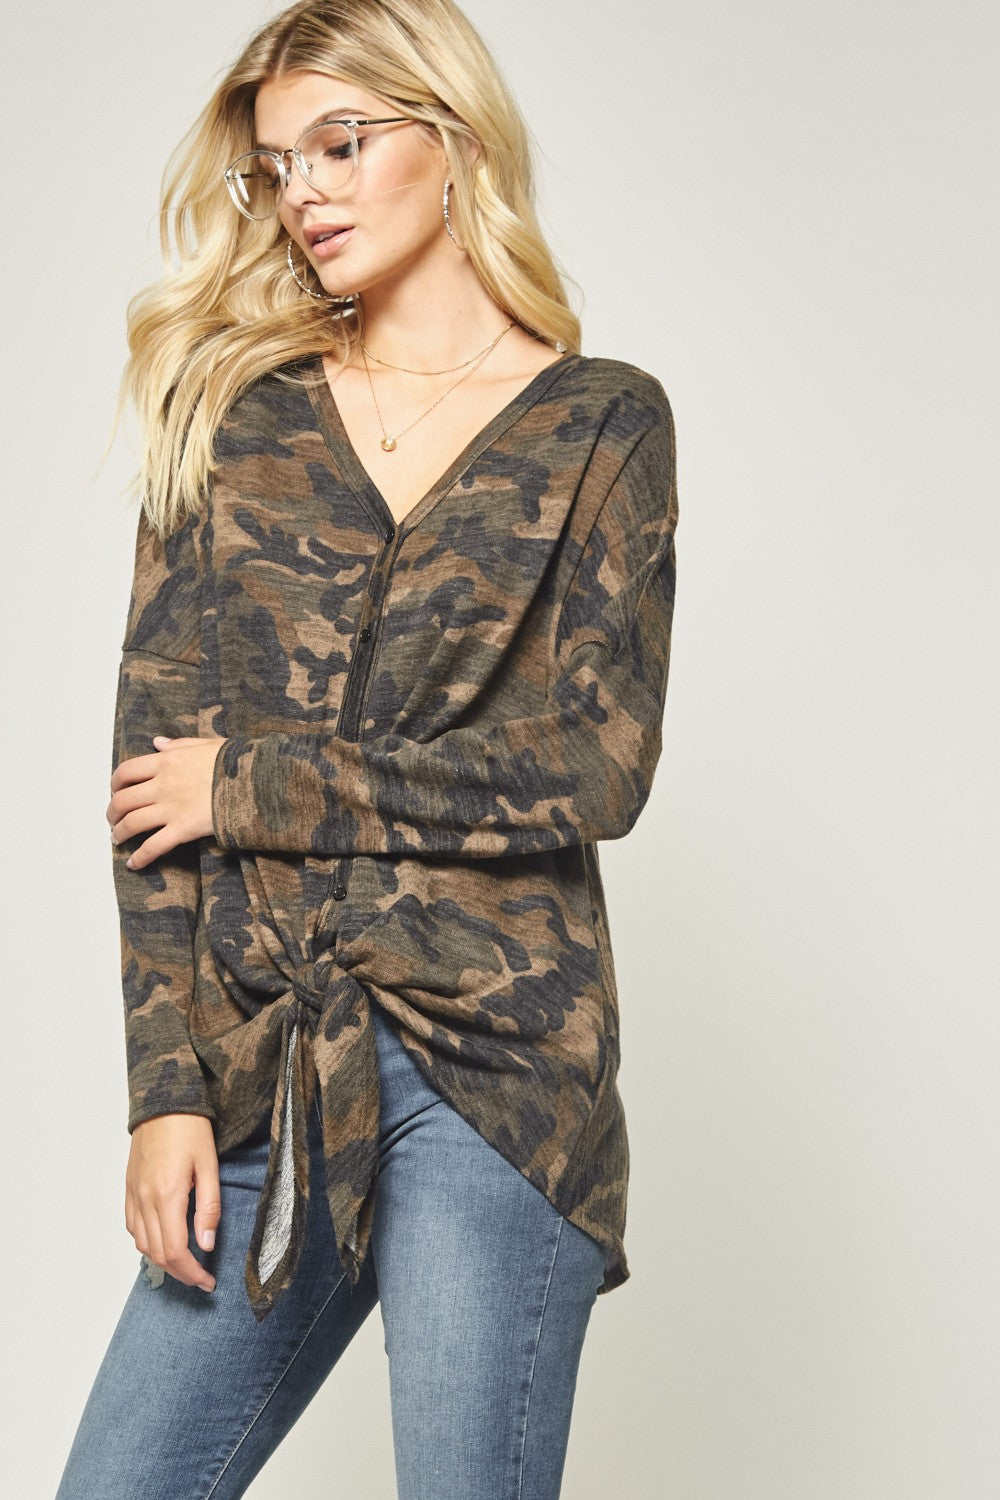 Loose Fit Button Up Camo Top w/ Front Tie